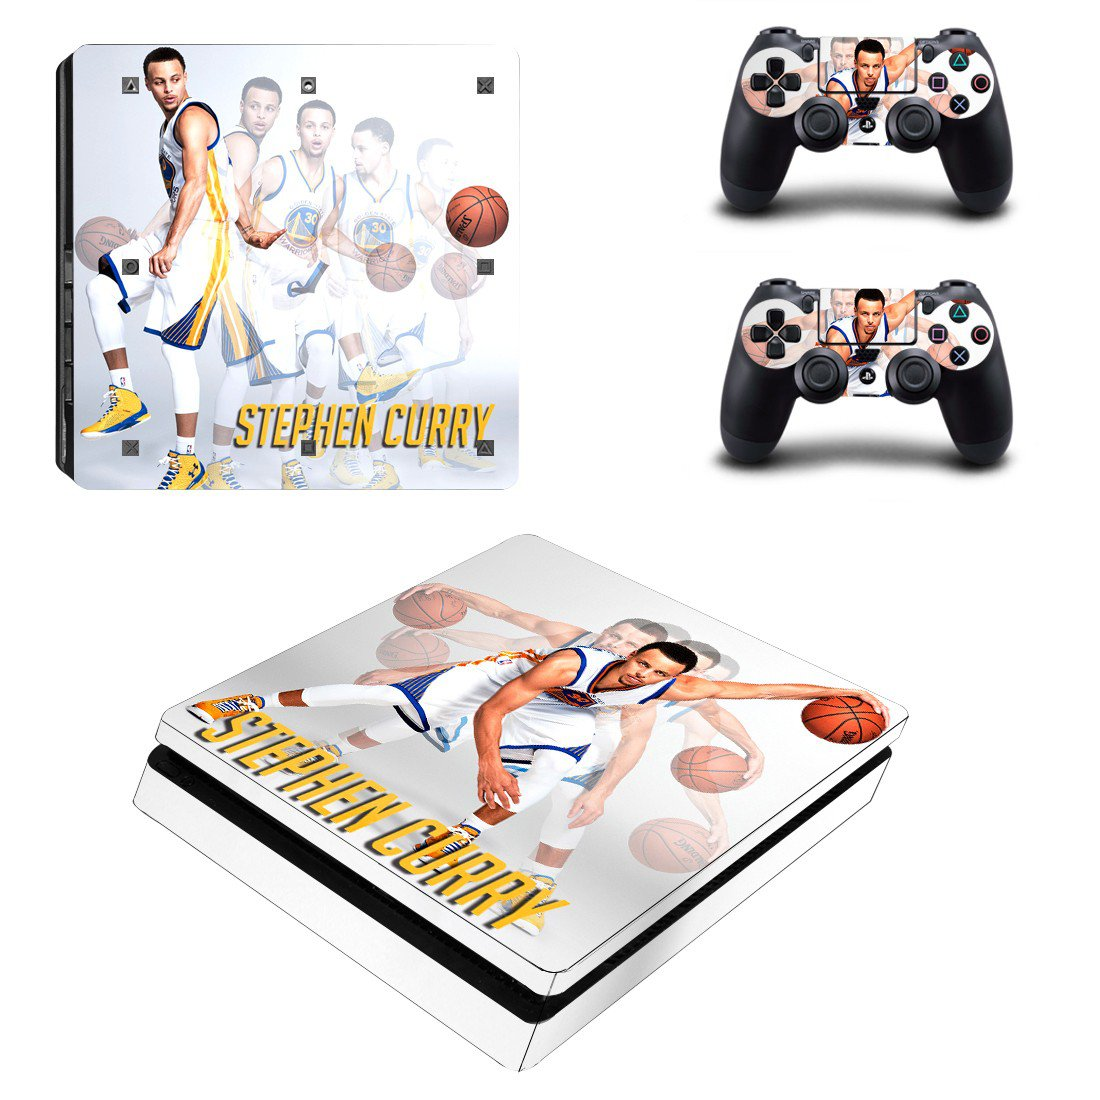 Stephen Curry Play Station 4 slim skin decal for console and 2 controllers